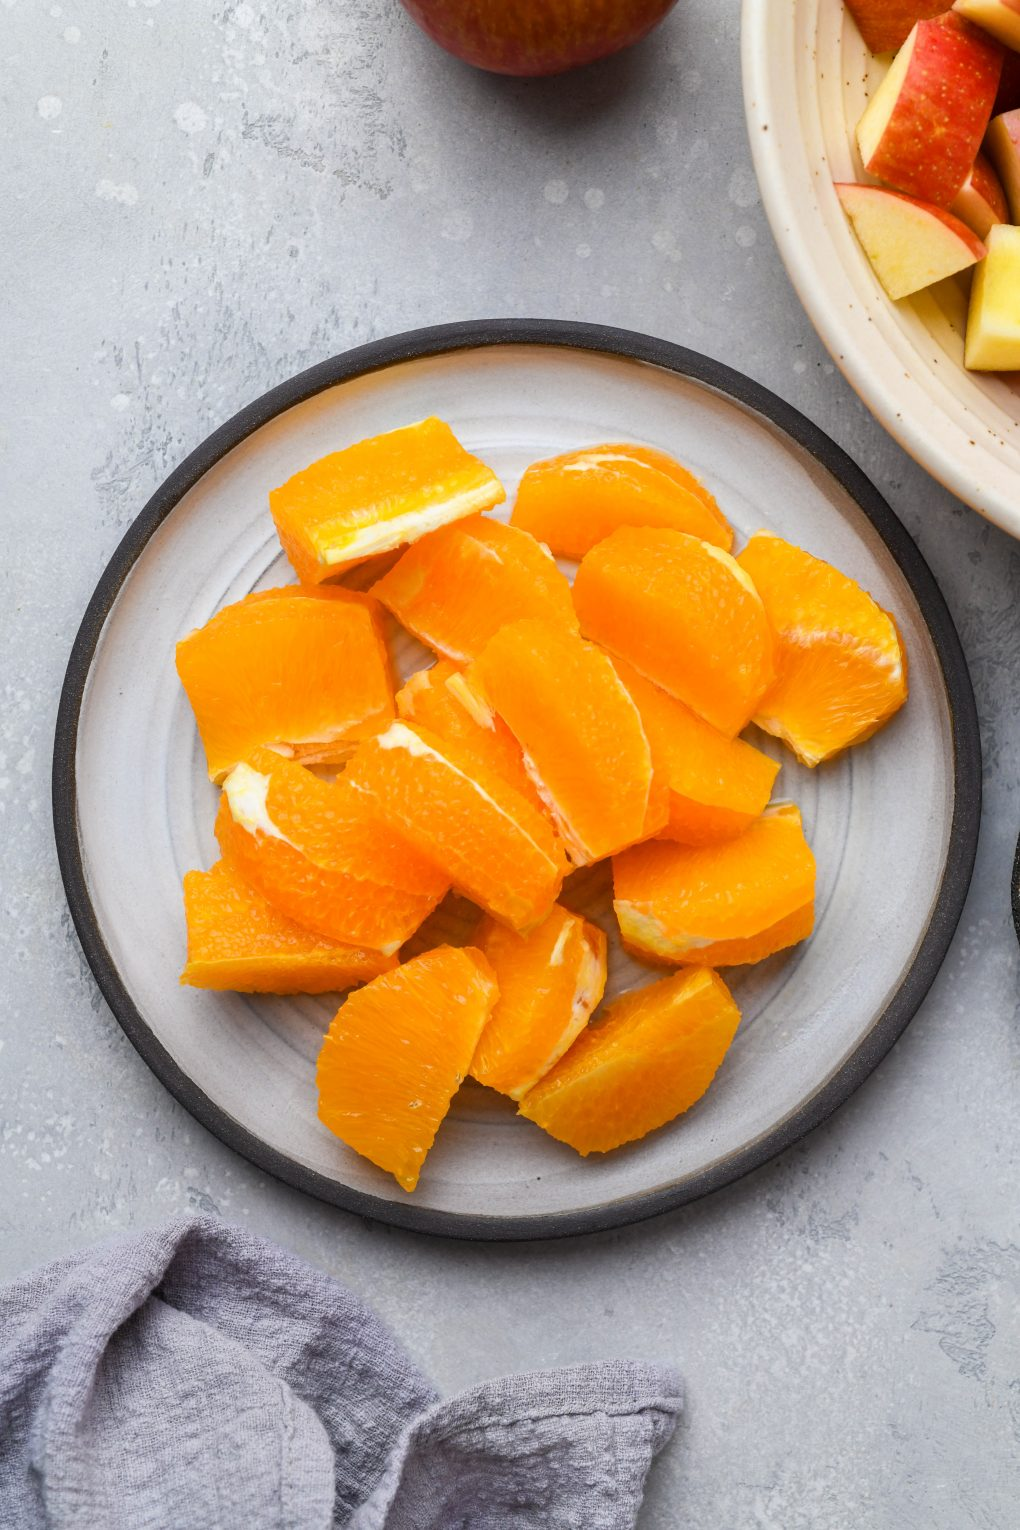 A plate of orange segments on a light colored background.